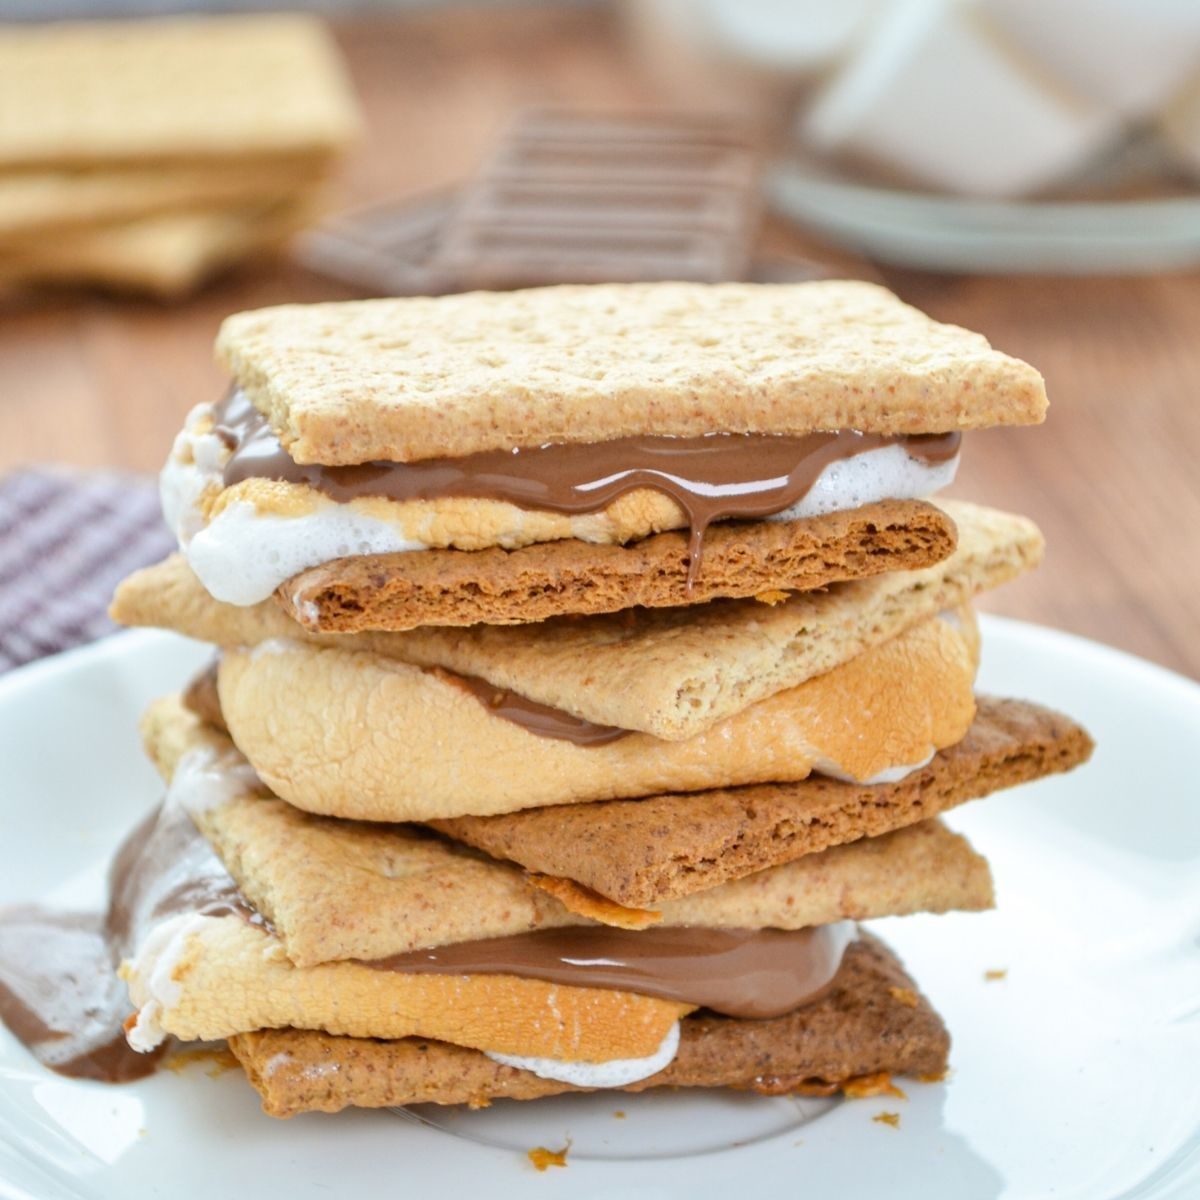 A stack of S'mores on a plate.